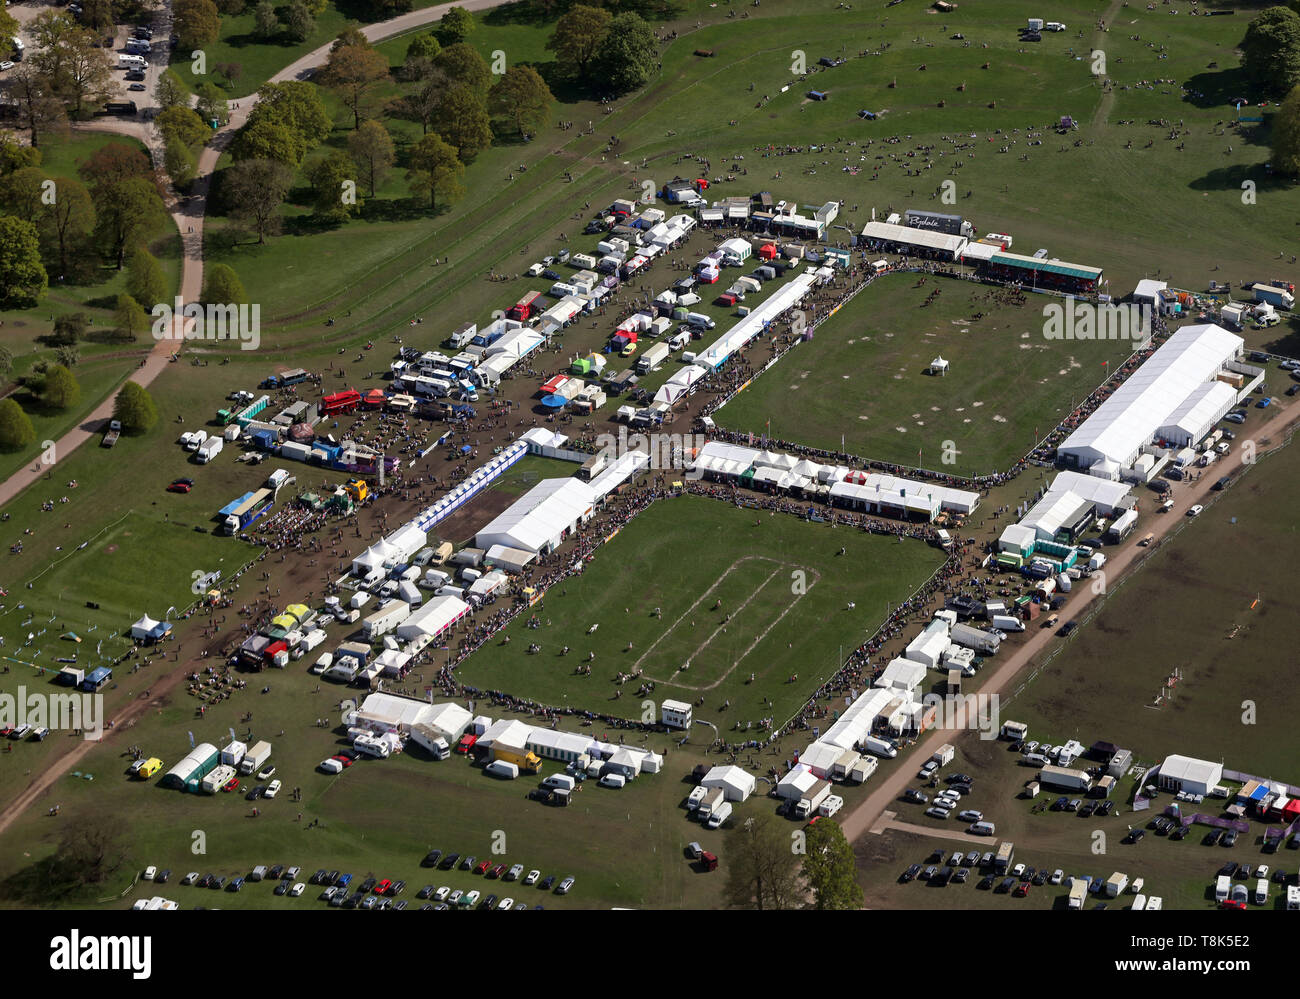 aerial view of the Dodson & Horrell Chatsworth International Horse Trials at Chatsworth House on the 12th May 2019 - Stock Image